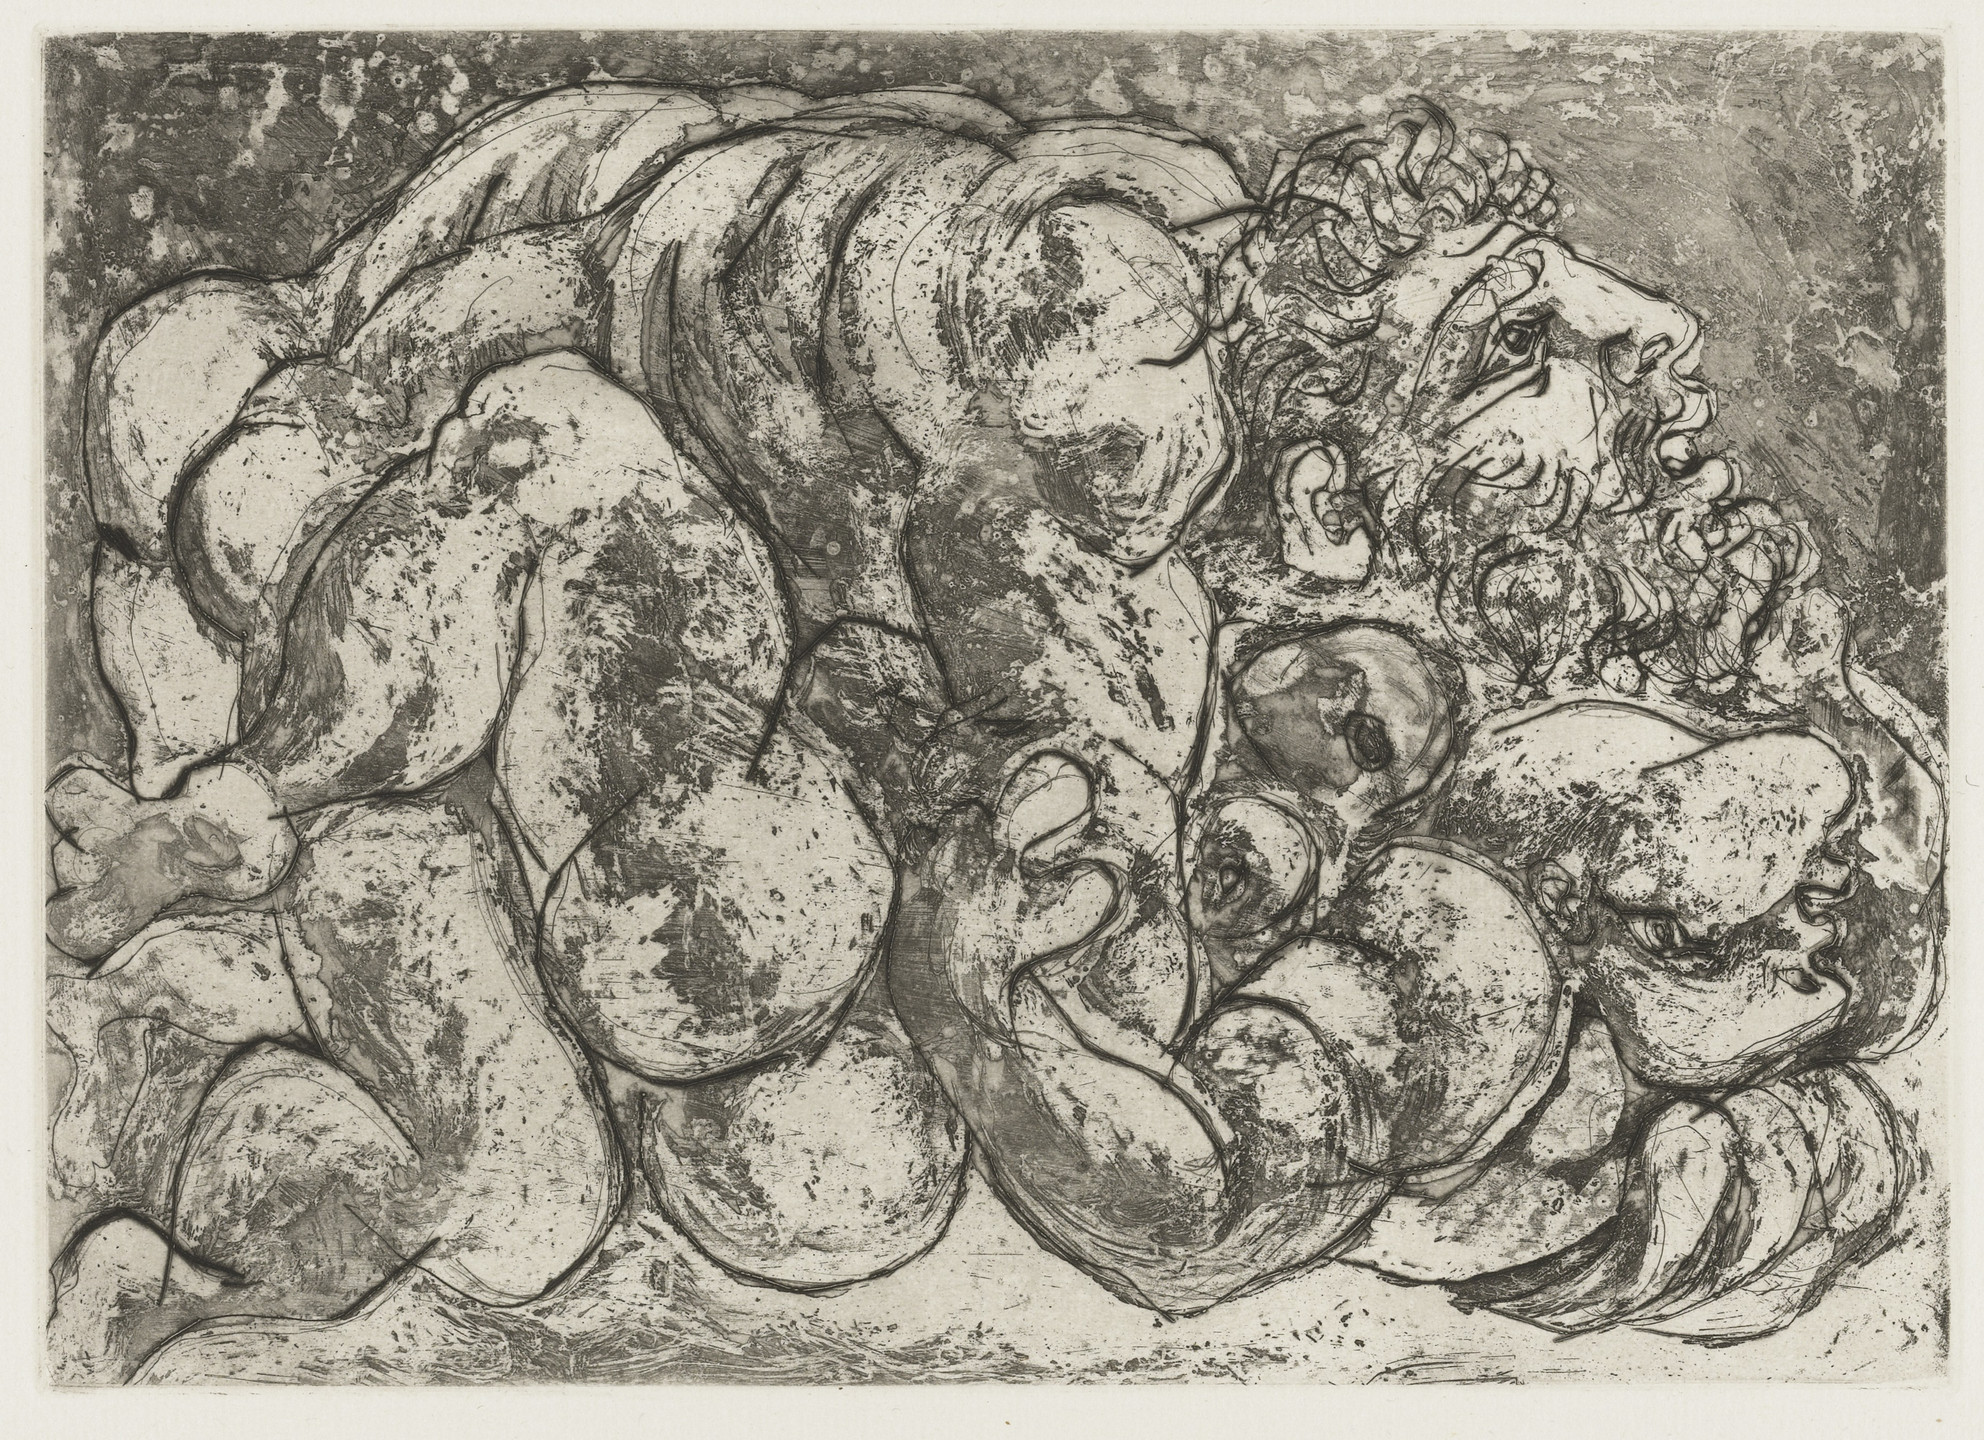 Pablo Picasso. Coupling I (Accouplement I) from the Vollard Suite (Suite Vollard). 1933, published 1939